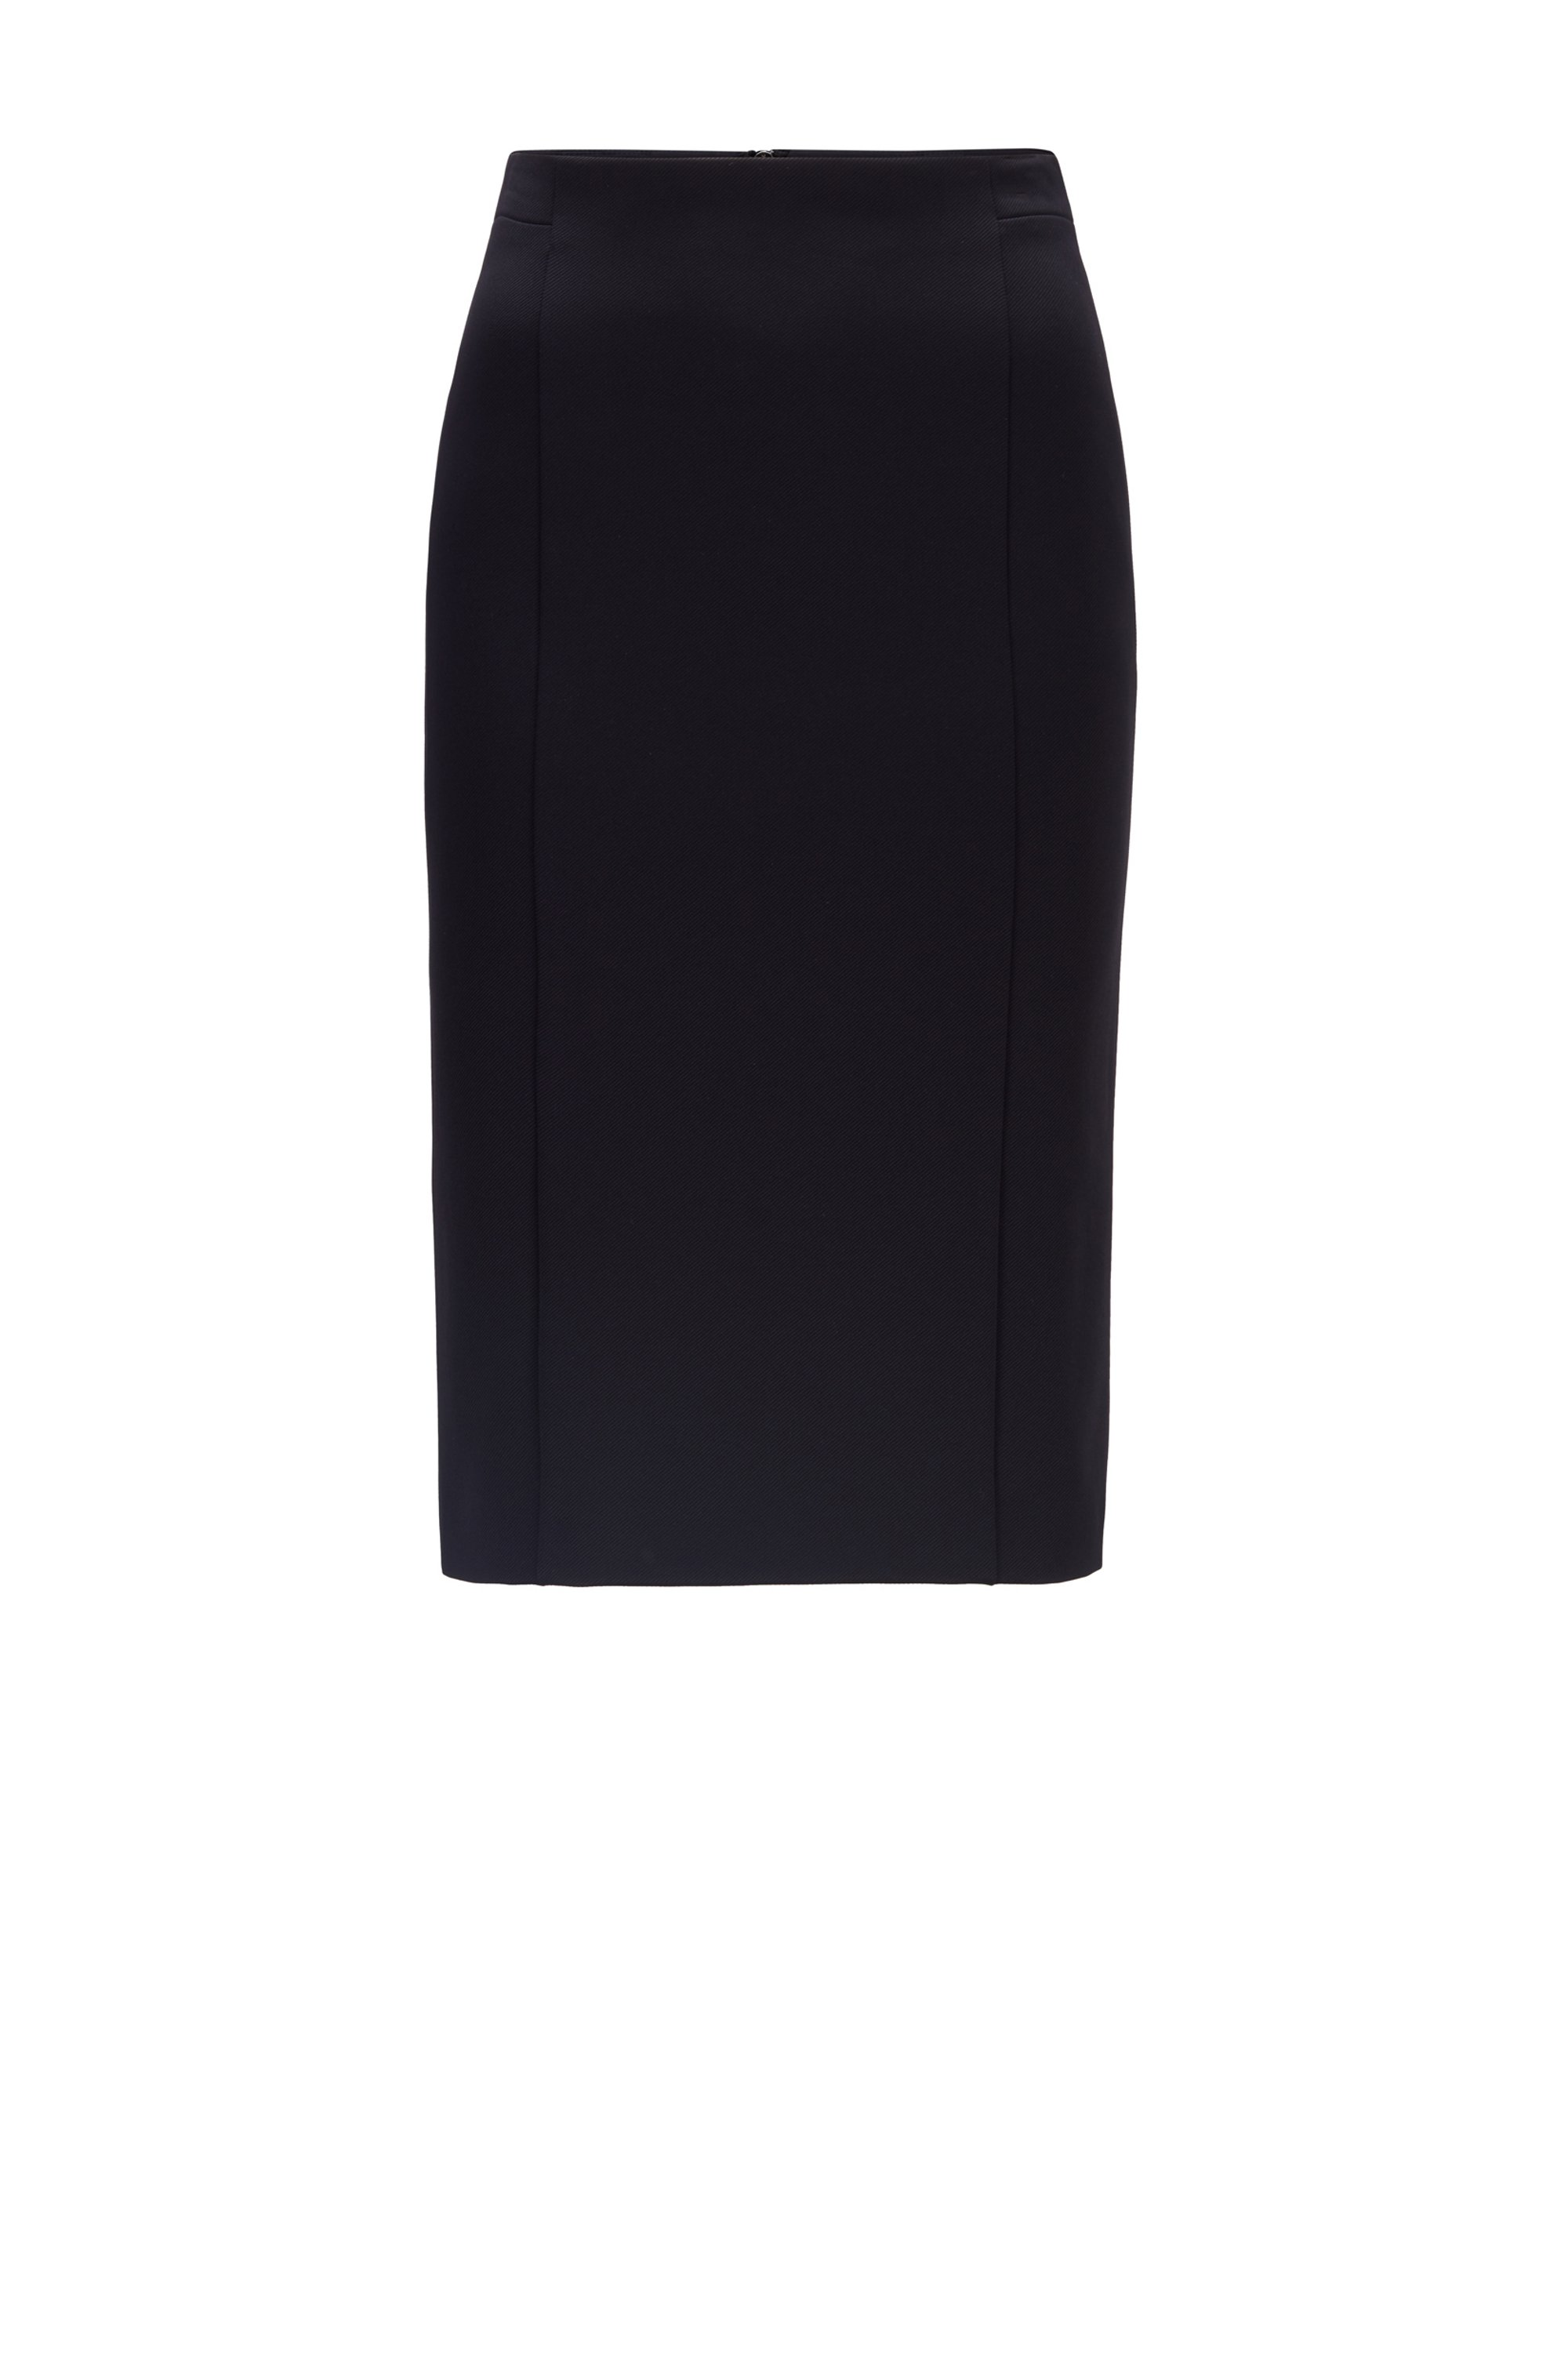 Slim-fit pencil skirt in stretch twill, Black